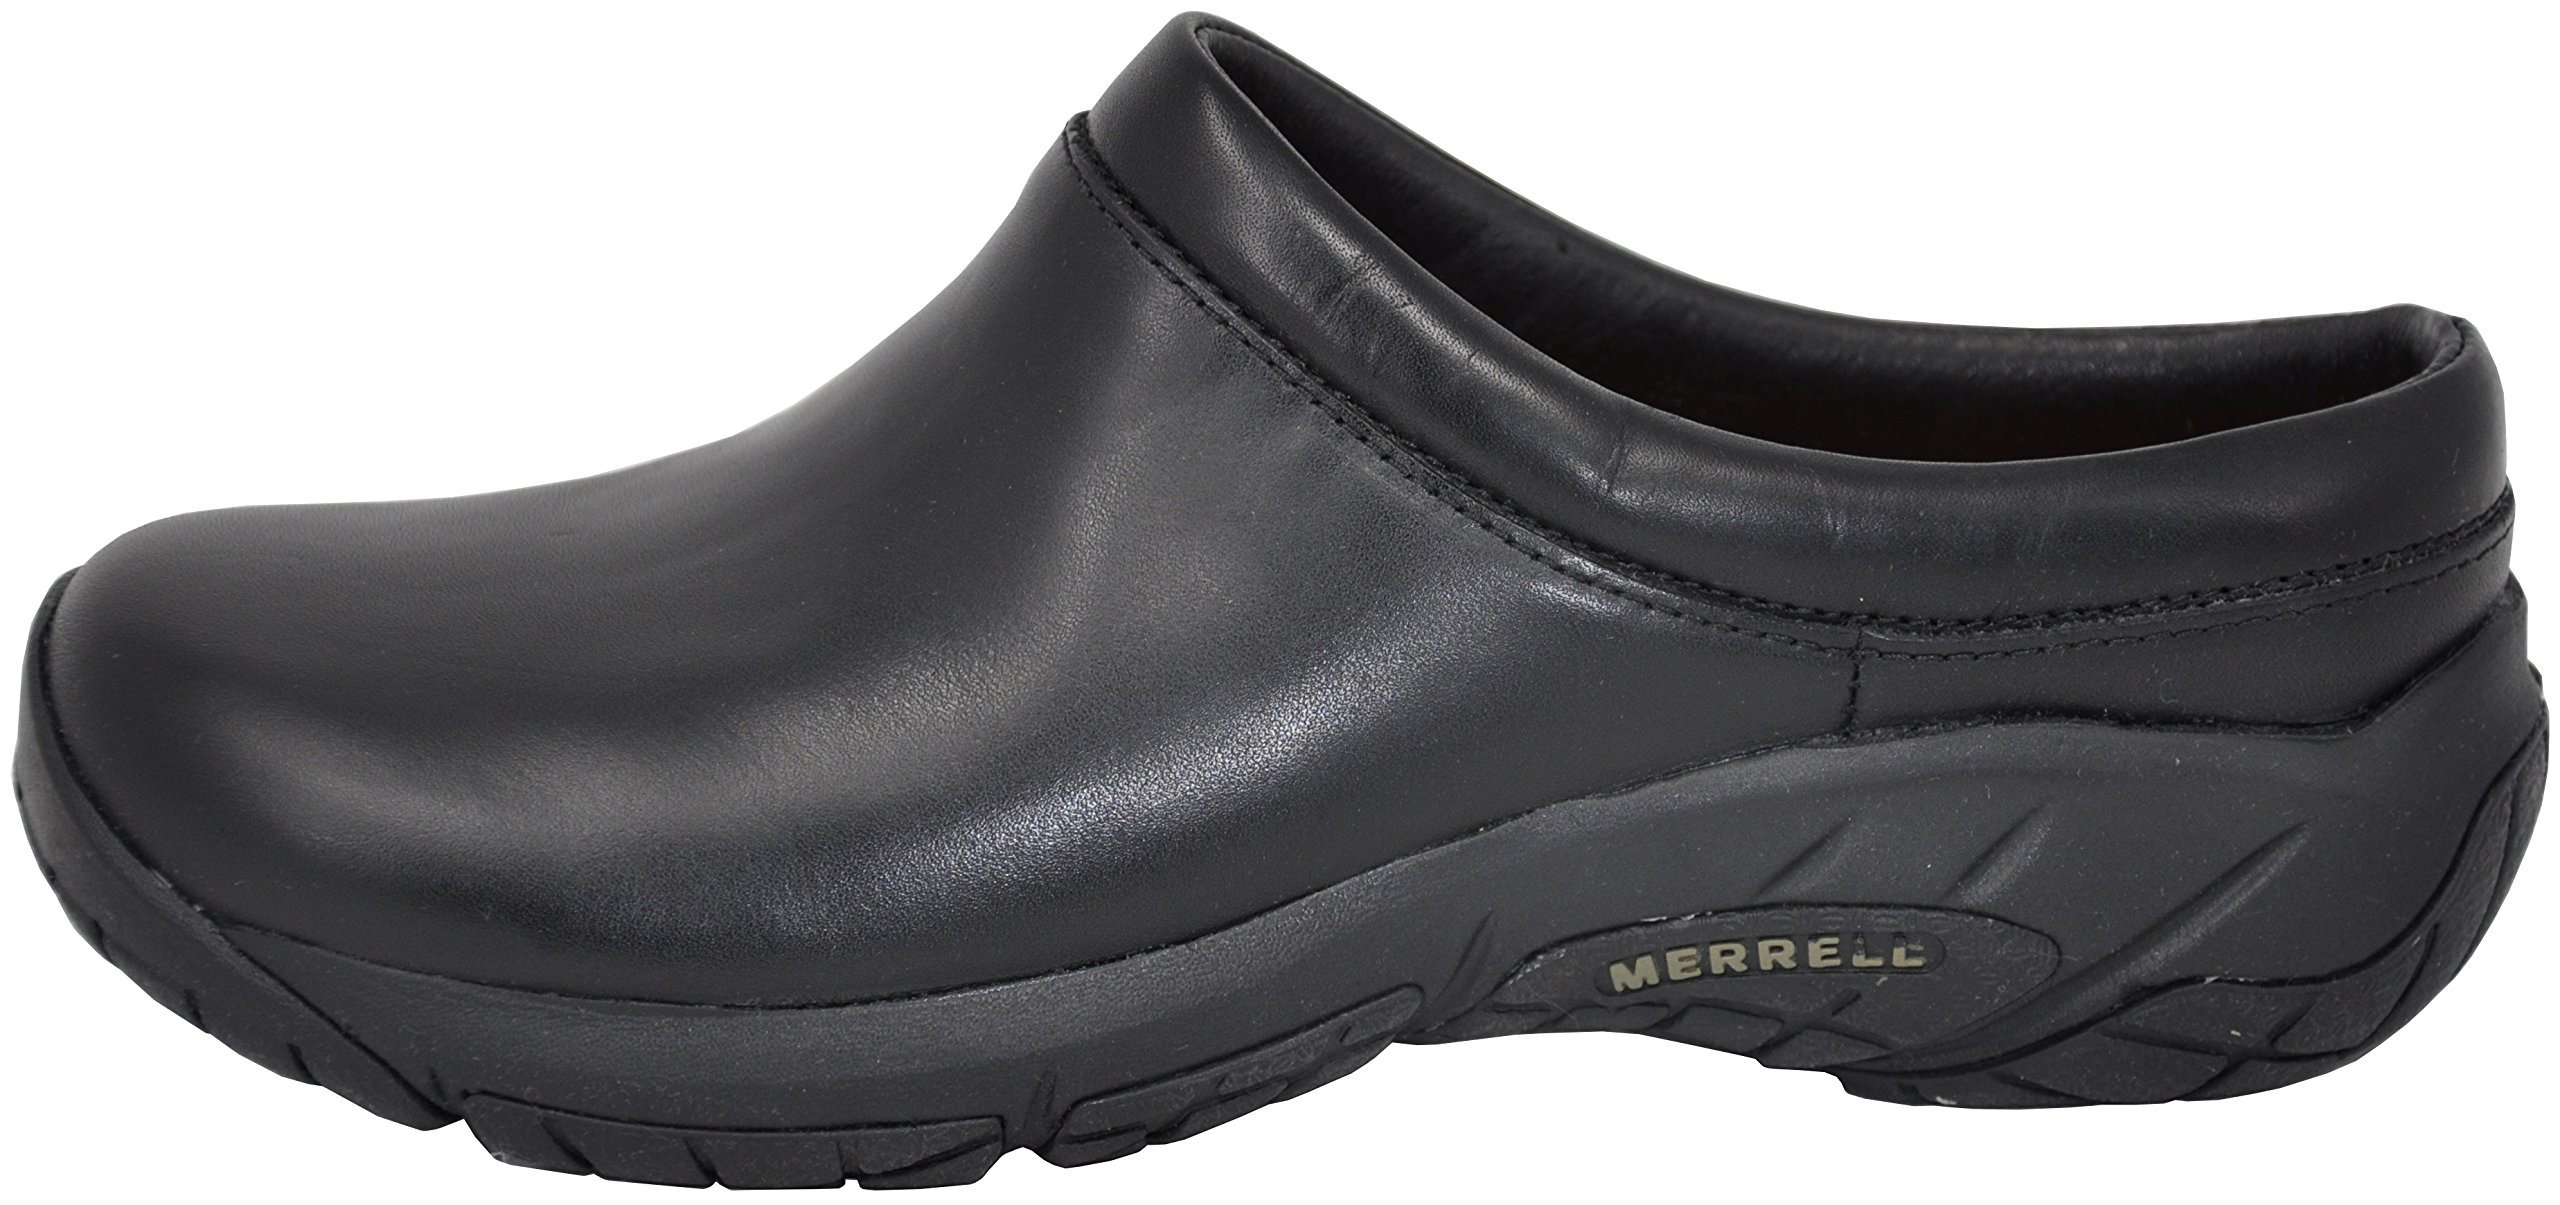 Merrell Women's Encore Nova 2 Trail Runner, Black Smooth, 8 B(M) US by Merrell (Image #7)